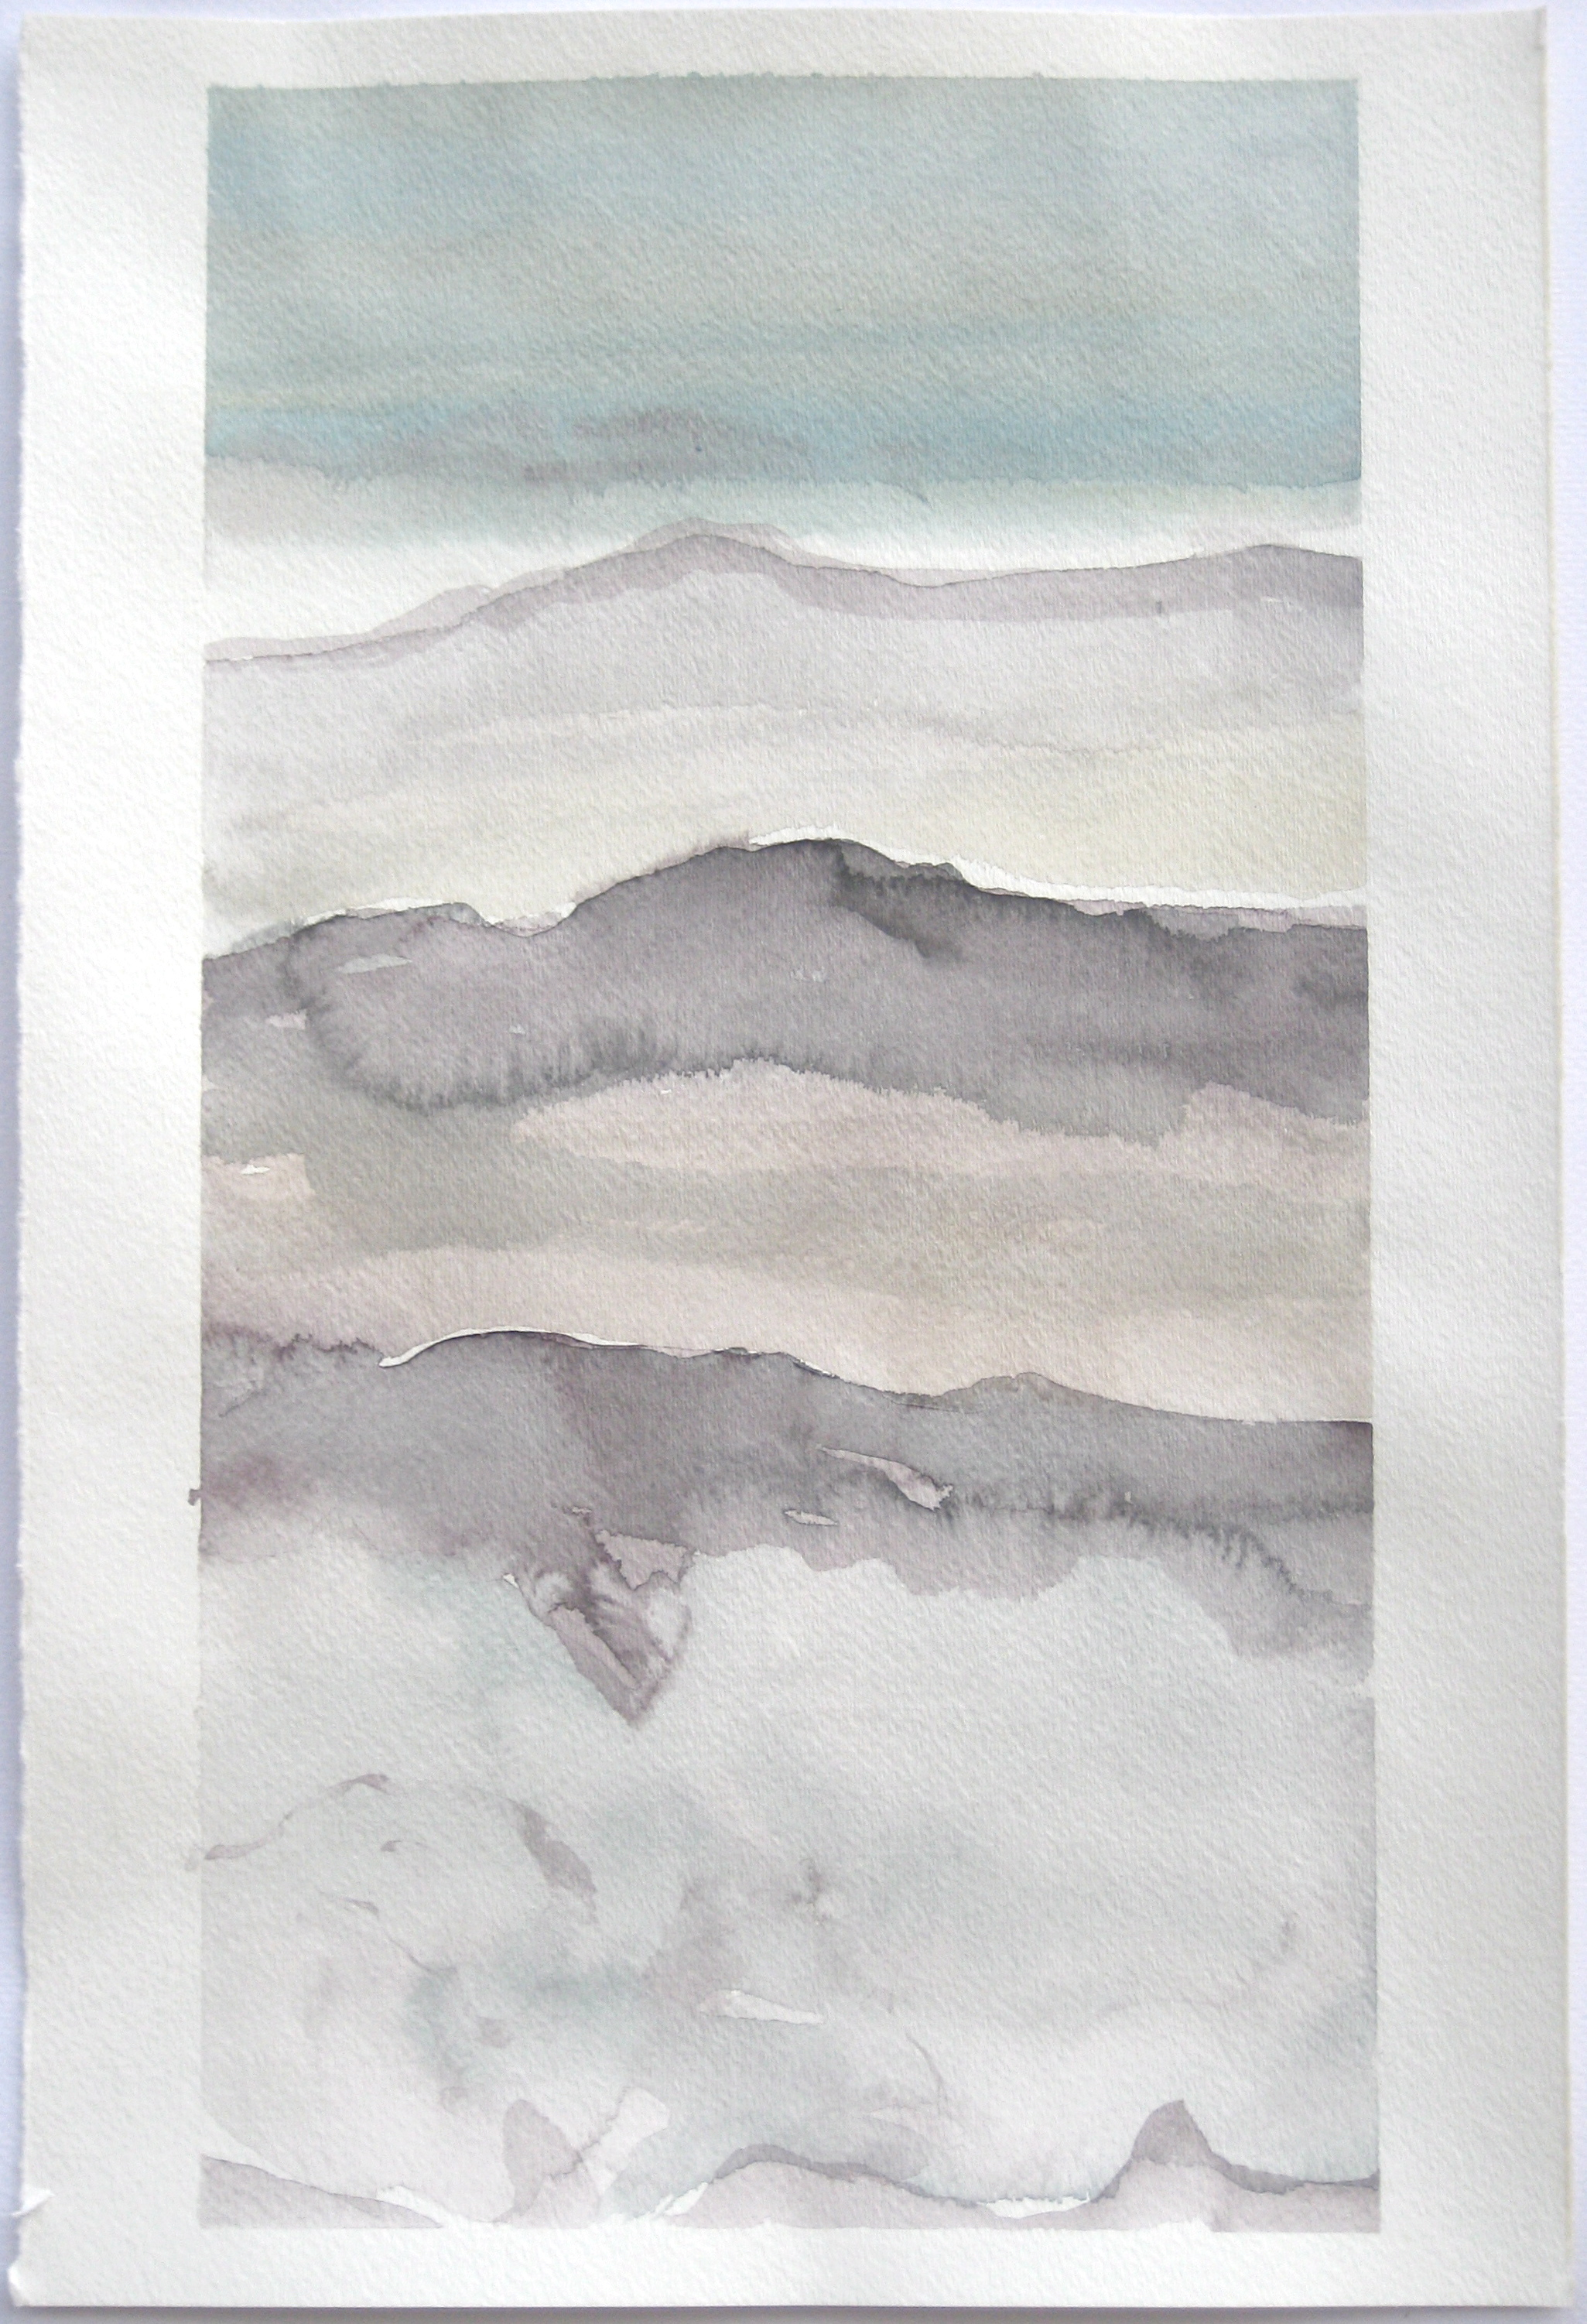 """Sky #8.4/2007. 2007, watercolor on paper paper: 18""""x12""""; image: 17""""x9 1/4"""""""